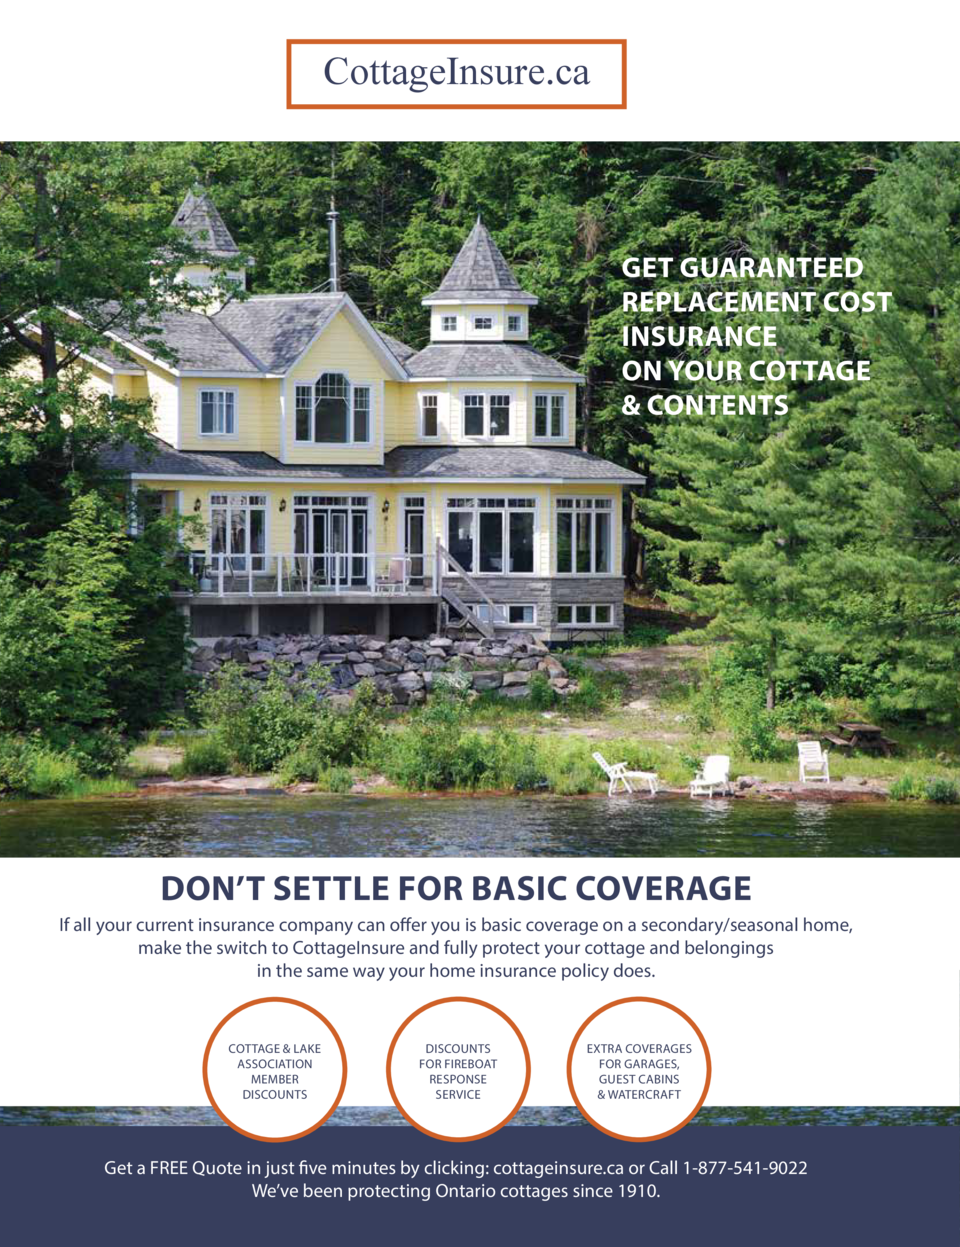 CottageInsure.ca  GET GUARANTEED REPLACEMENT COST INSURANCE ON YOUR COTTAGE   CONTENTS  DON   T SETTLE FOR BASIC COVERAGE ...